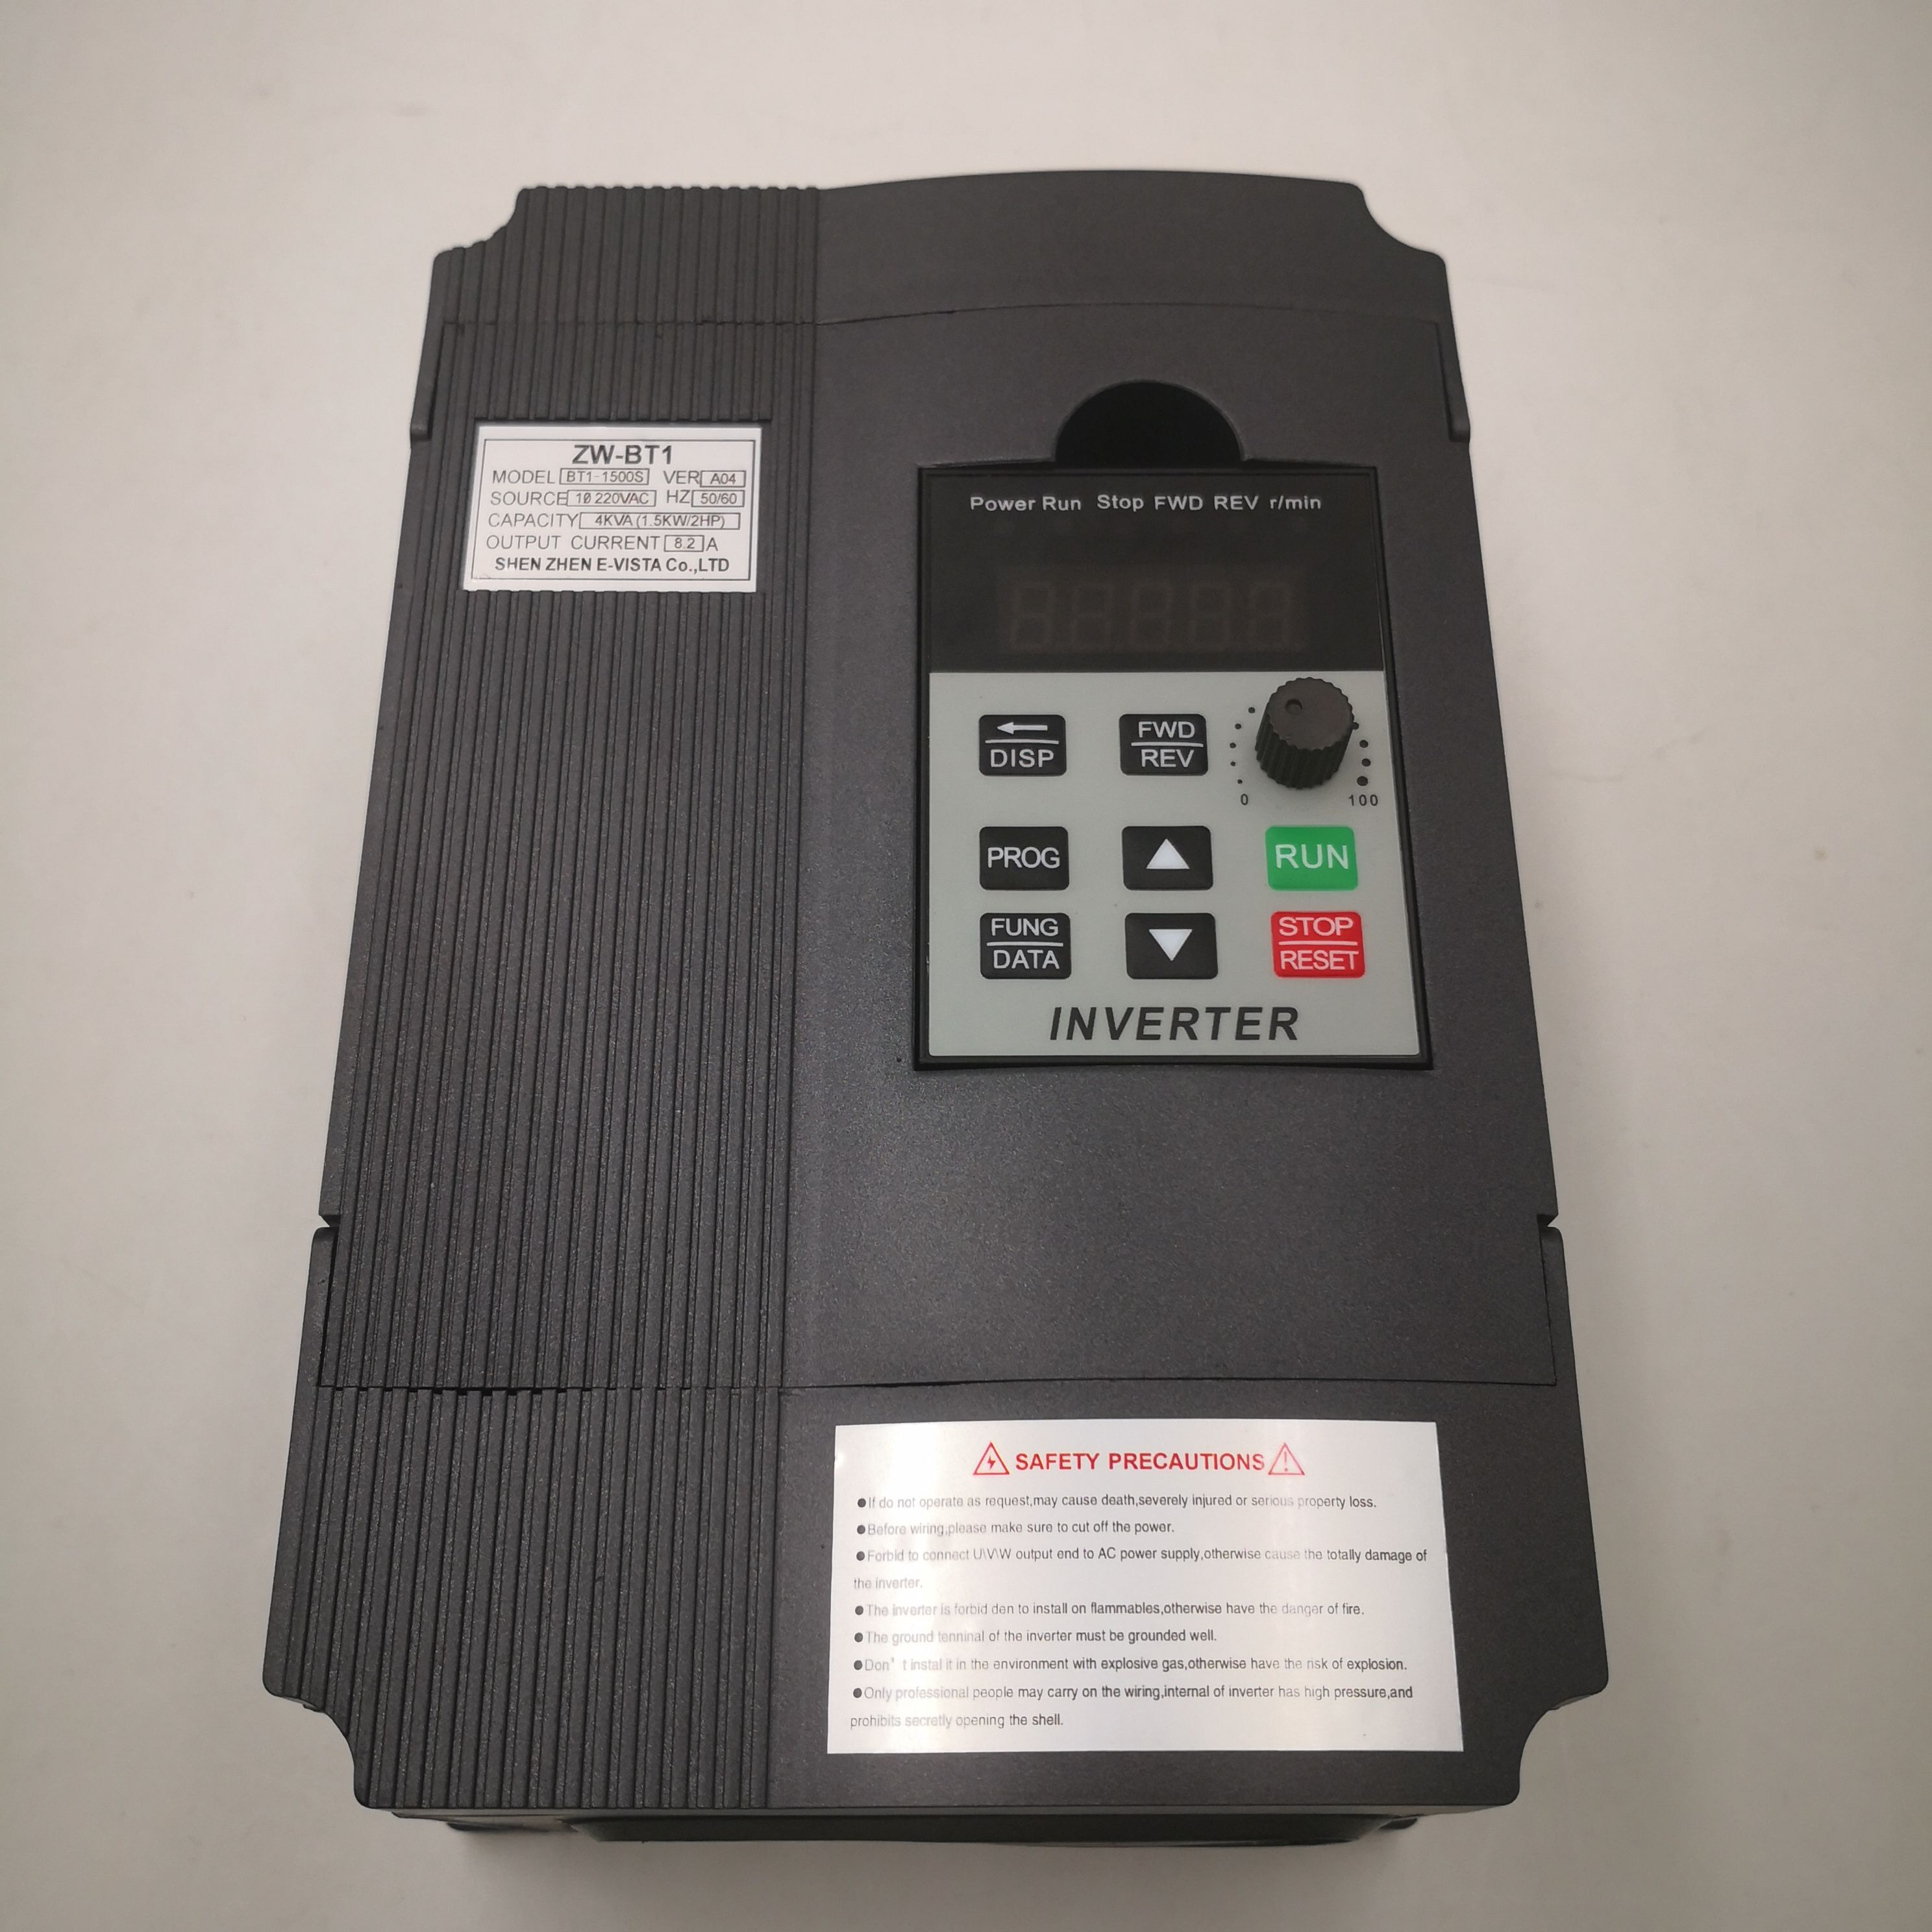 VFD Inverter VFD 1.5KW / 2.2KW frequency inverter ZW-BT1 3P 220V Output Frequency Converter VFD Variable Frequency Drive